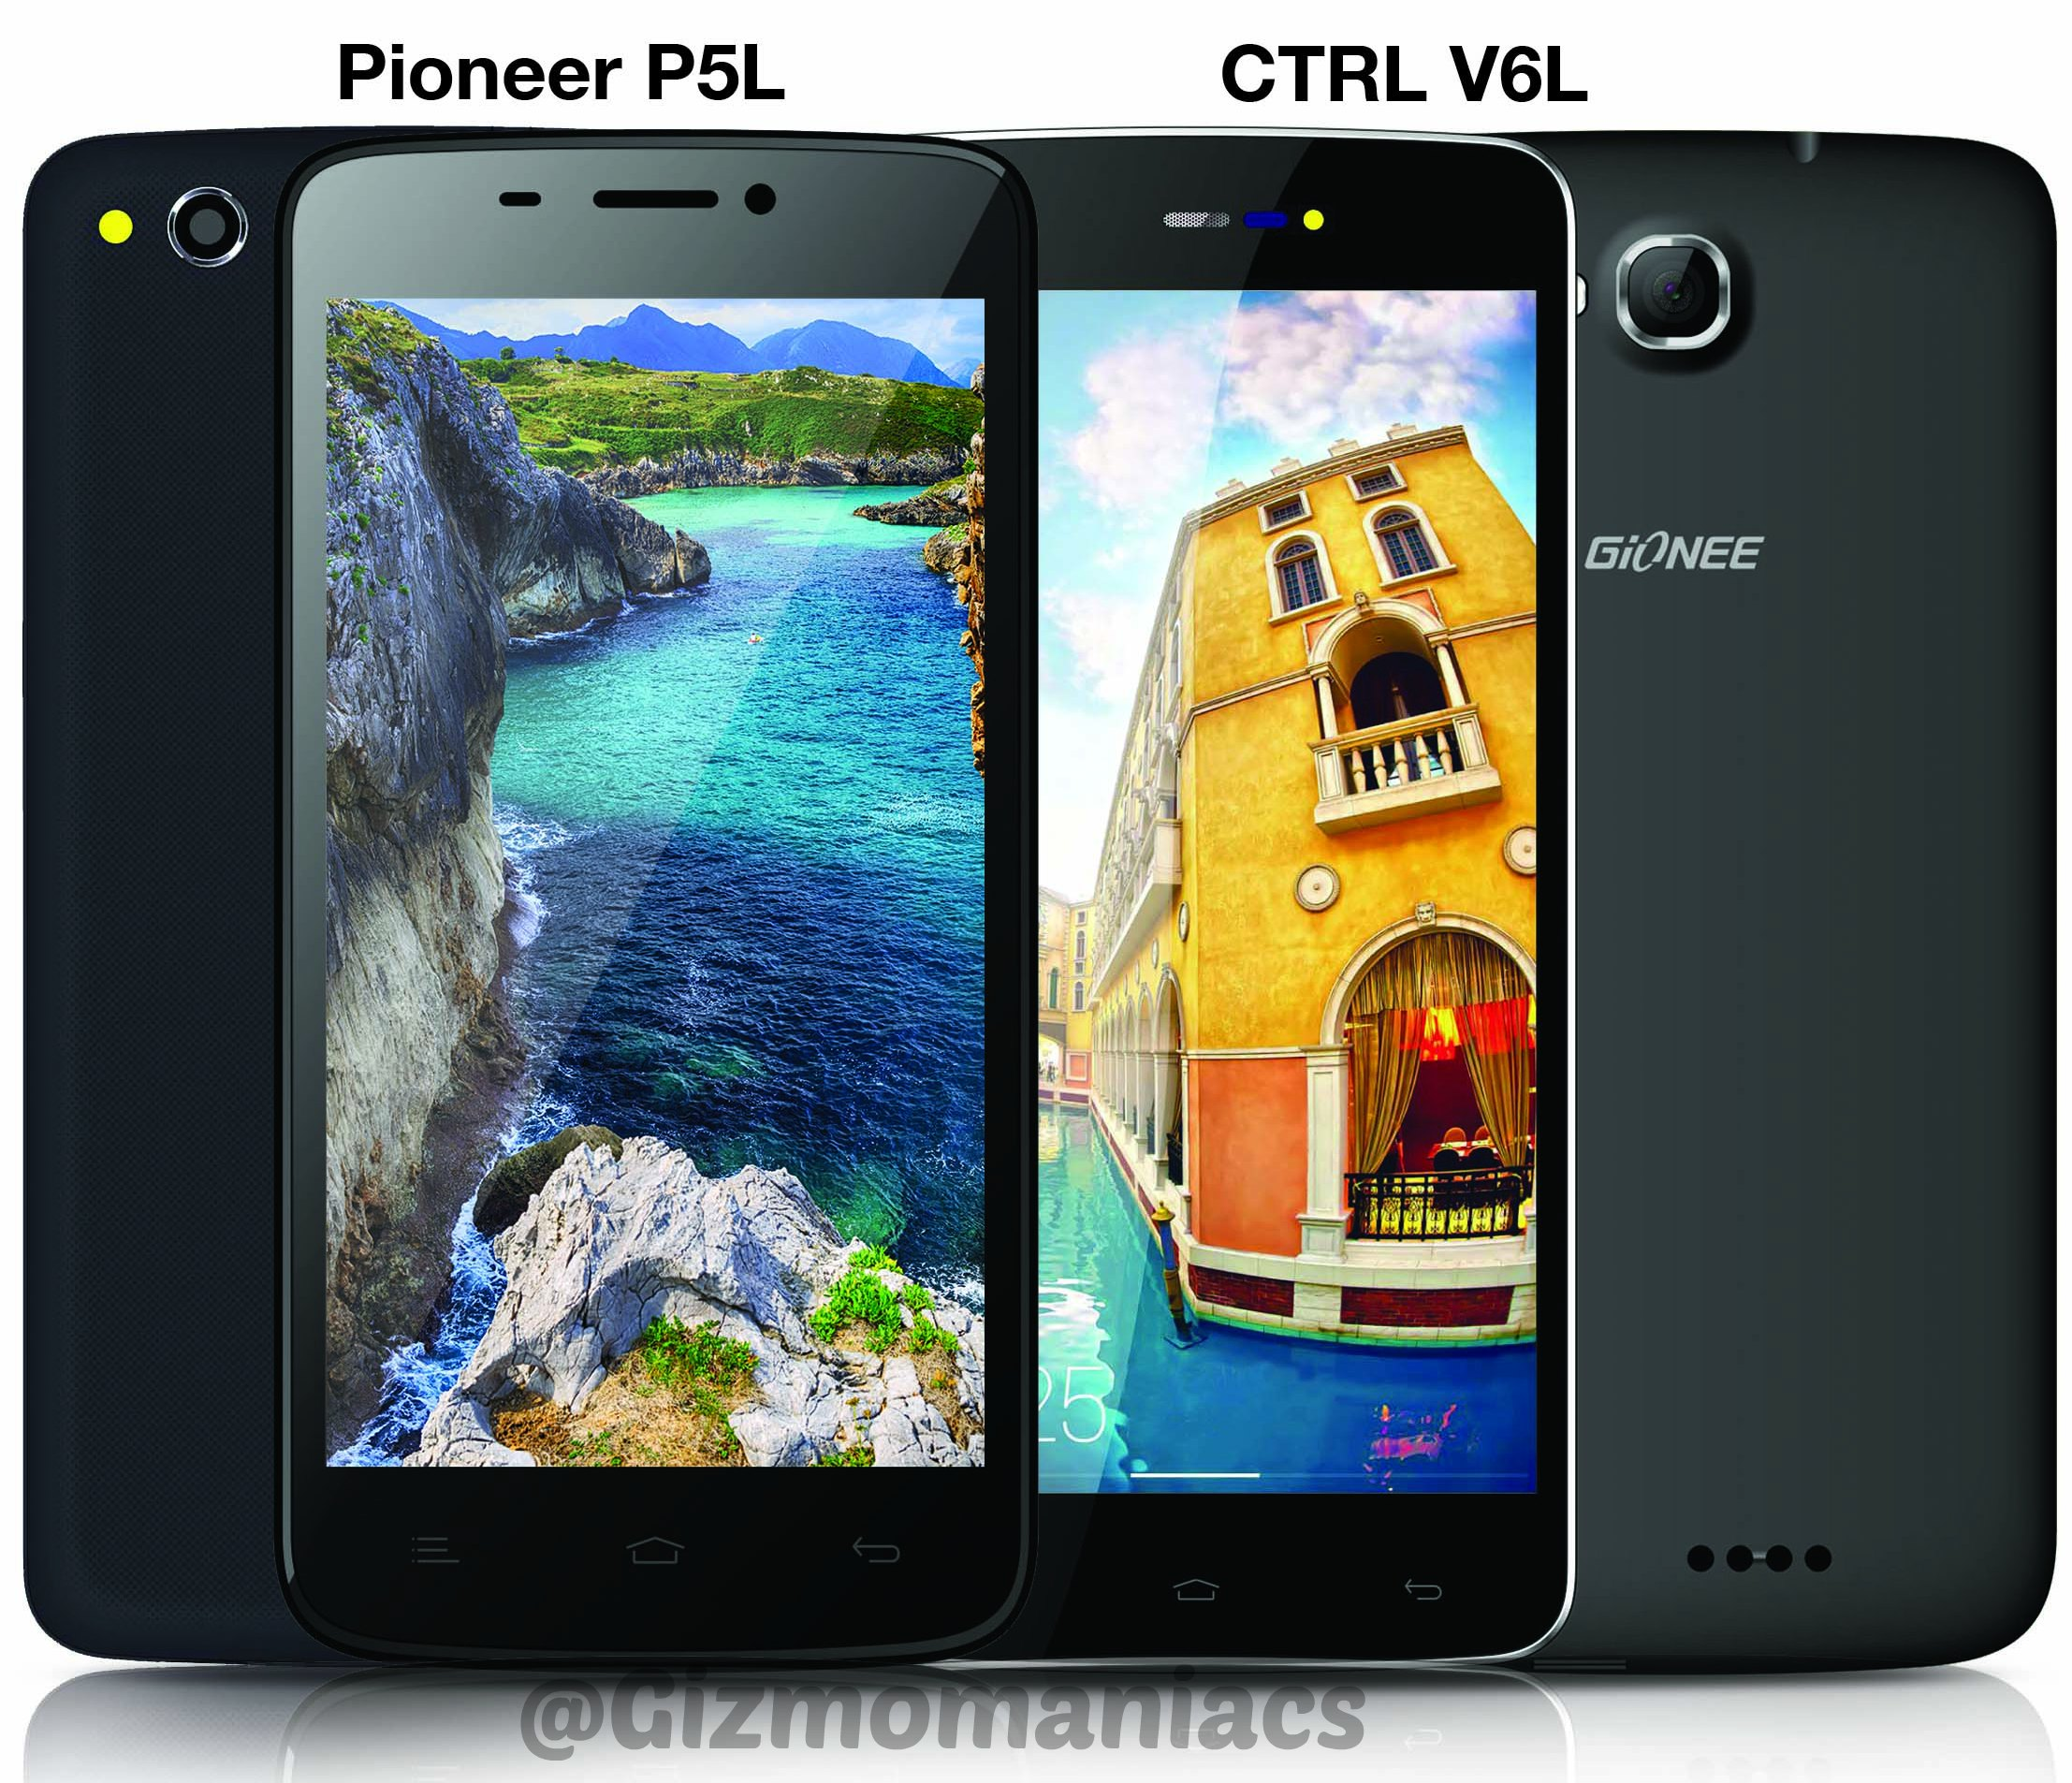 Kitkat Archives Page 2 Of 3 Gizmomaniacs Smartphone Lenovo S90 5 Inch Display Quad Core Android Gionee Ctrl V6l Lte And Pioneer P5l With 44